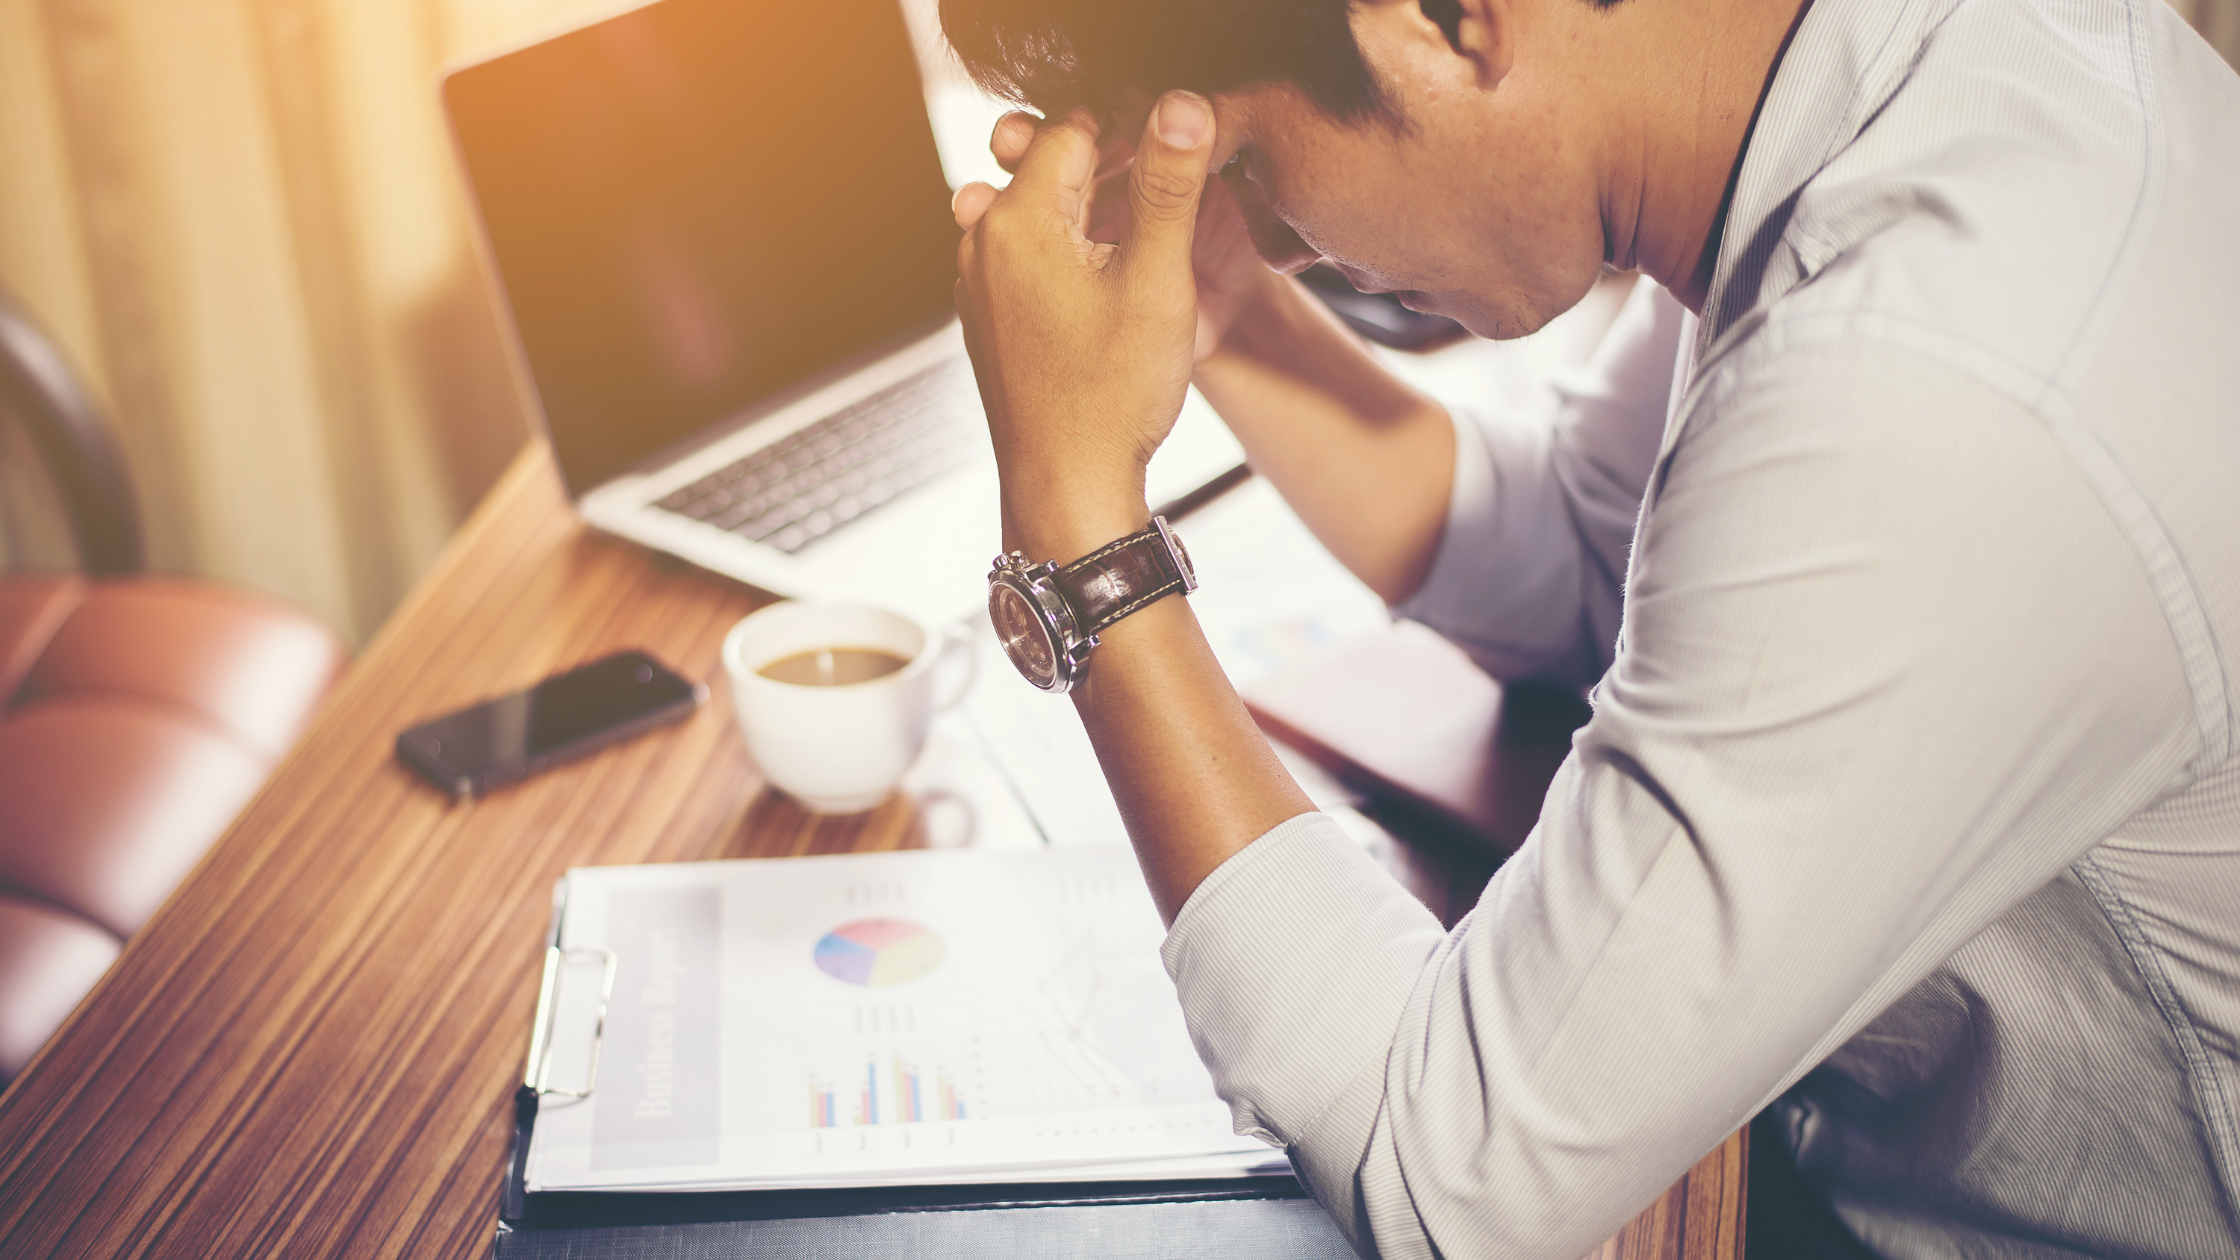 Is Money Causing You Stress? Here Are 5 Techniques to Overcome Financial Stress Thumbnail